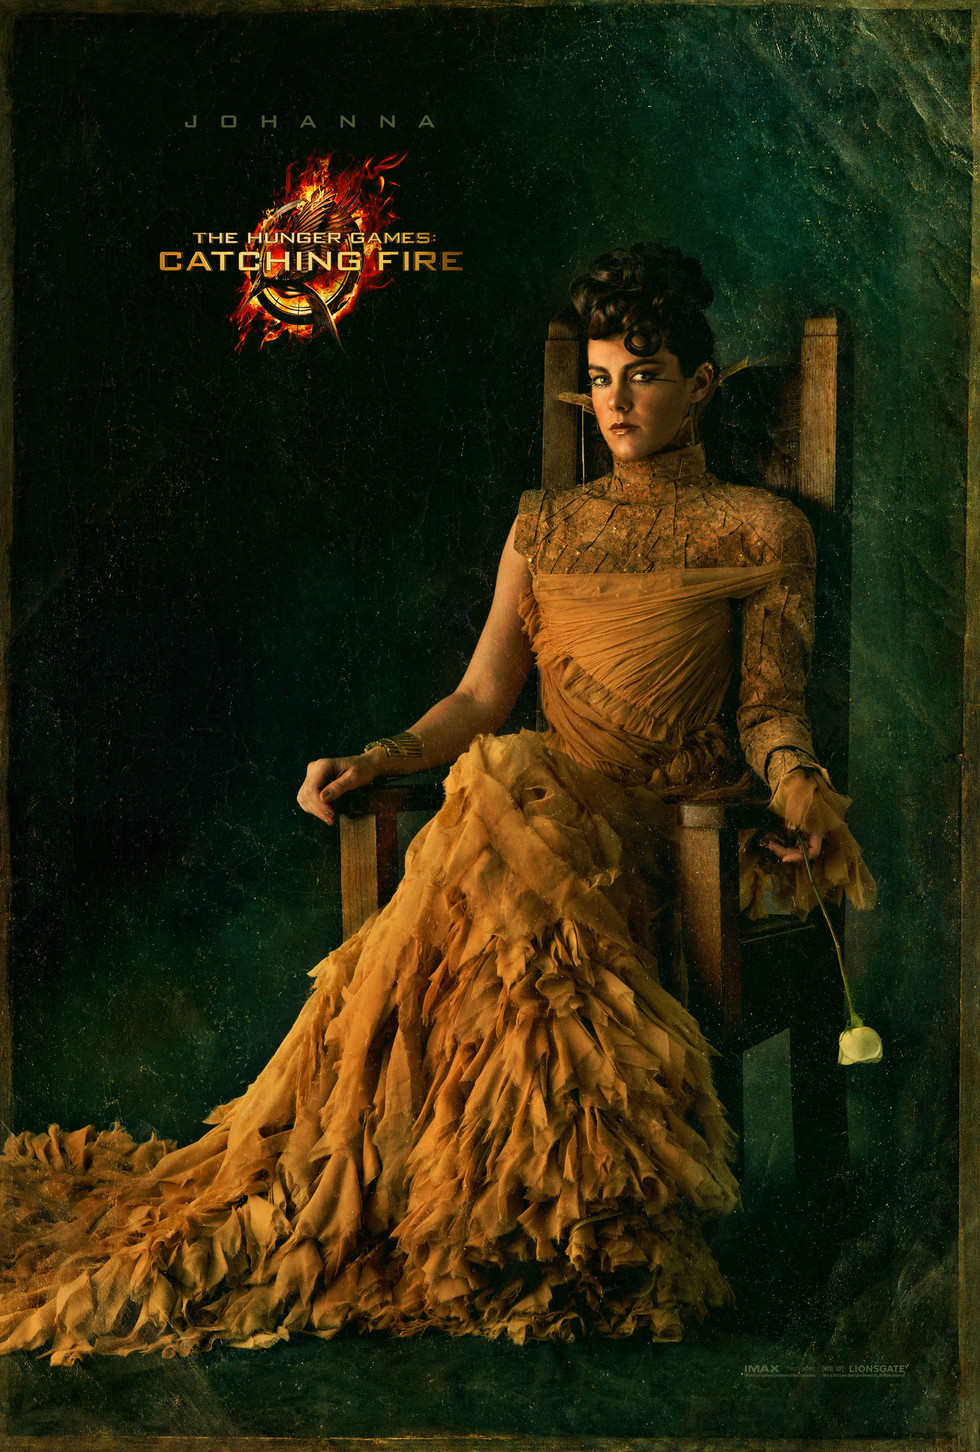 The Hunger Games: Catching Fire - Movie Poster #3 (Large)